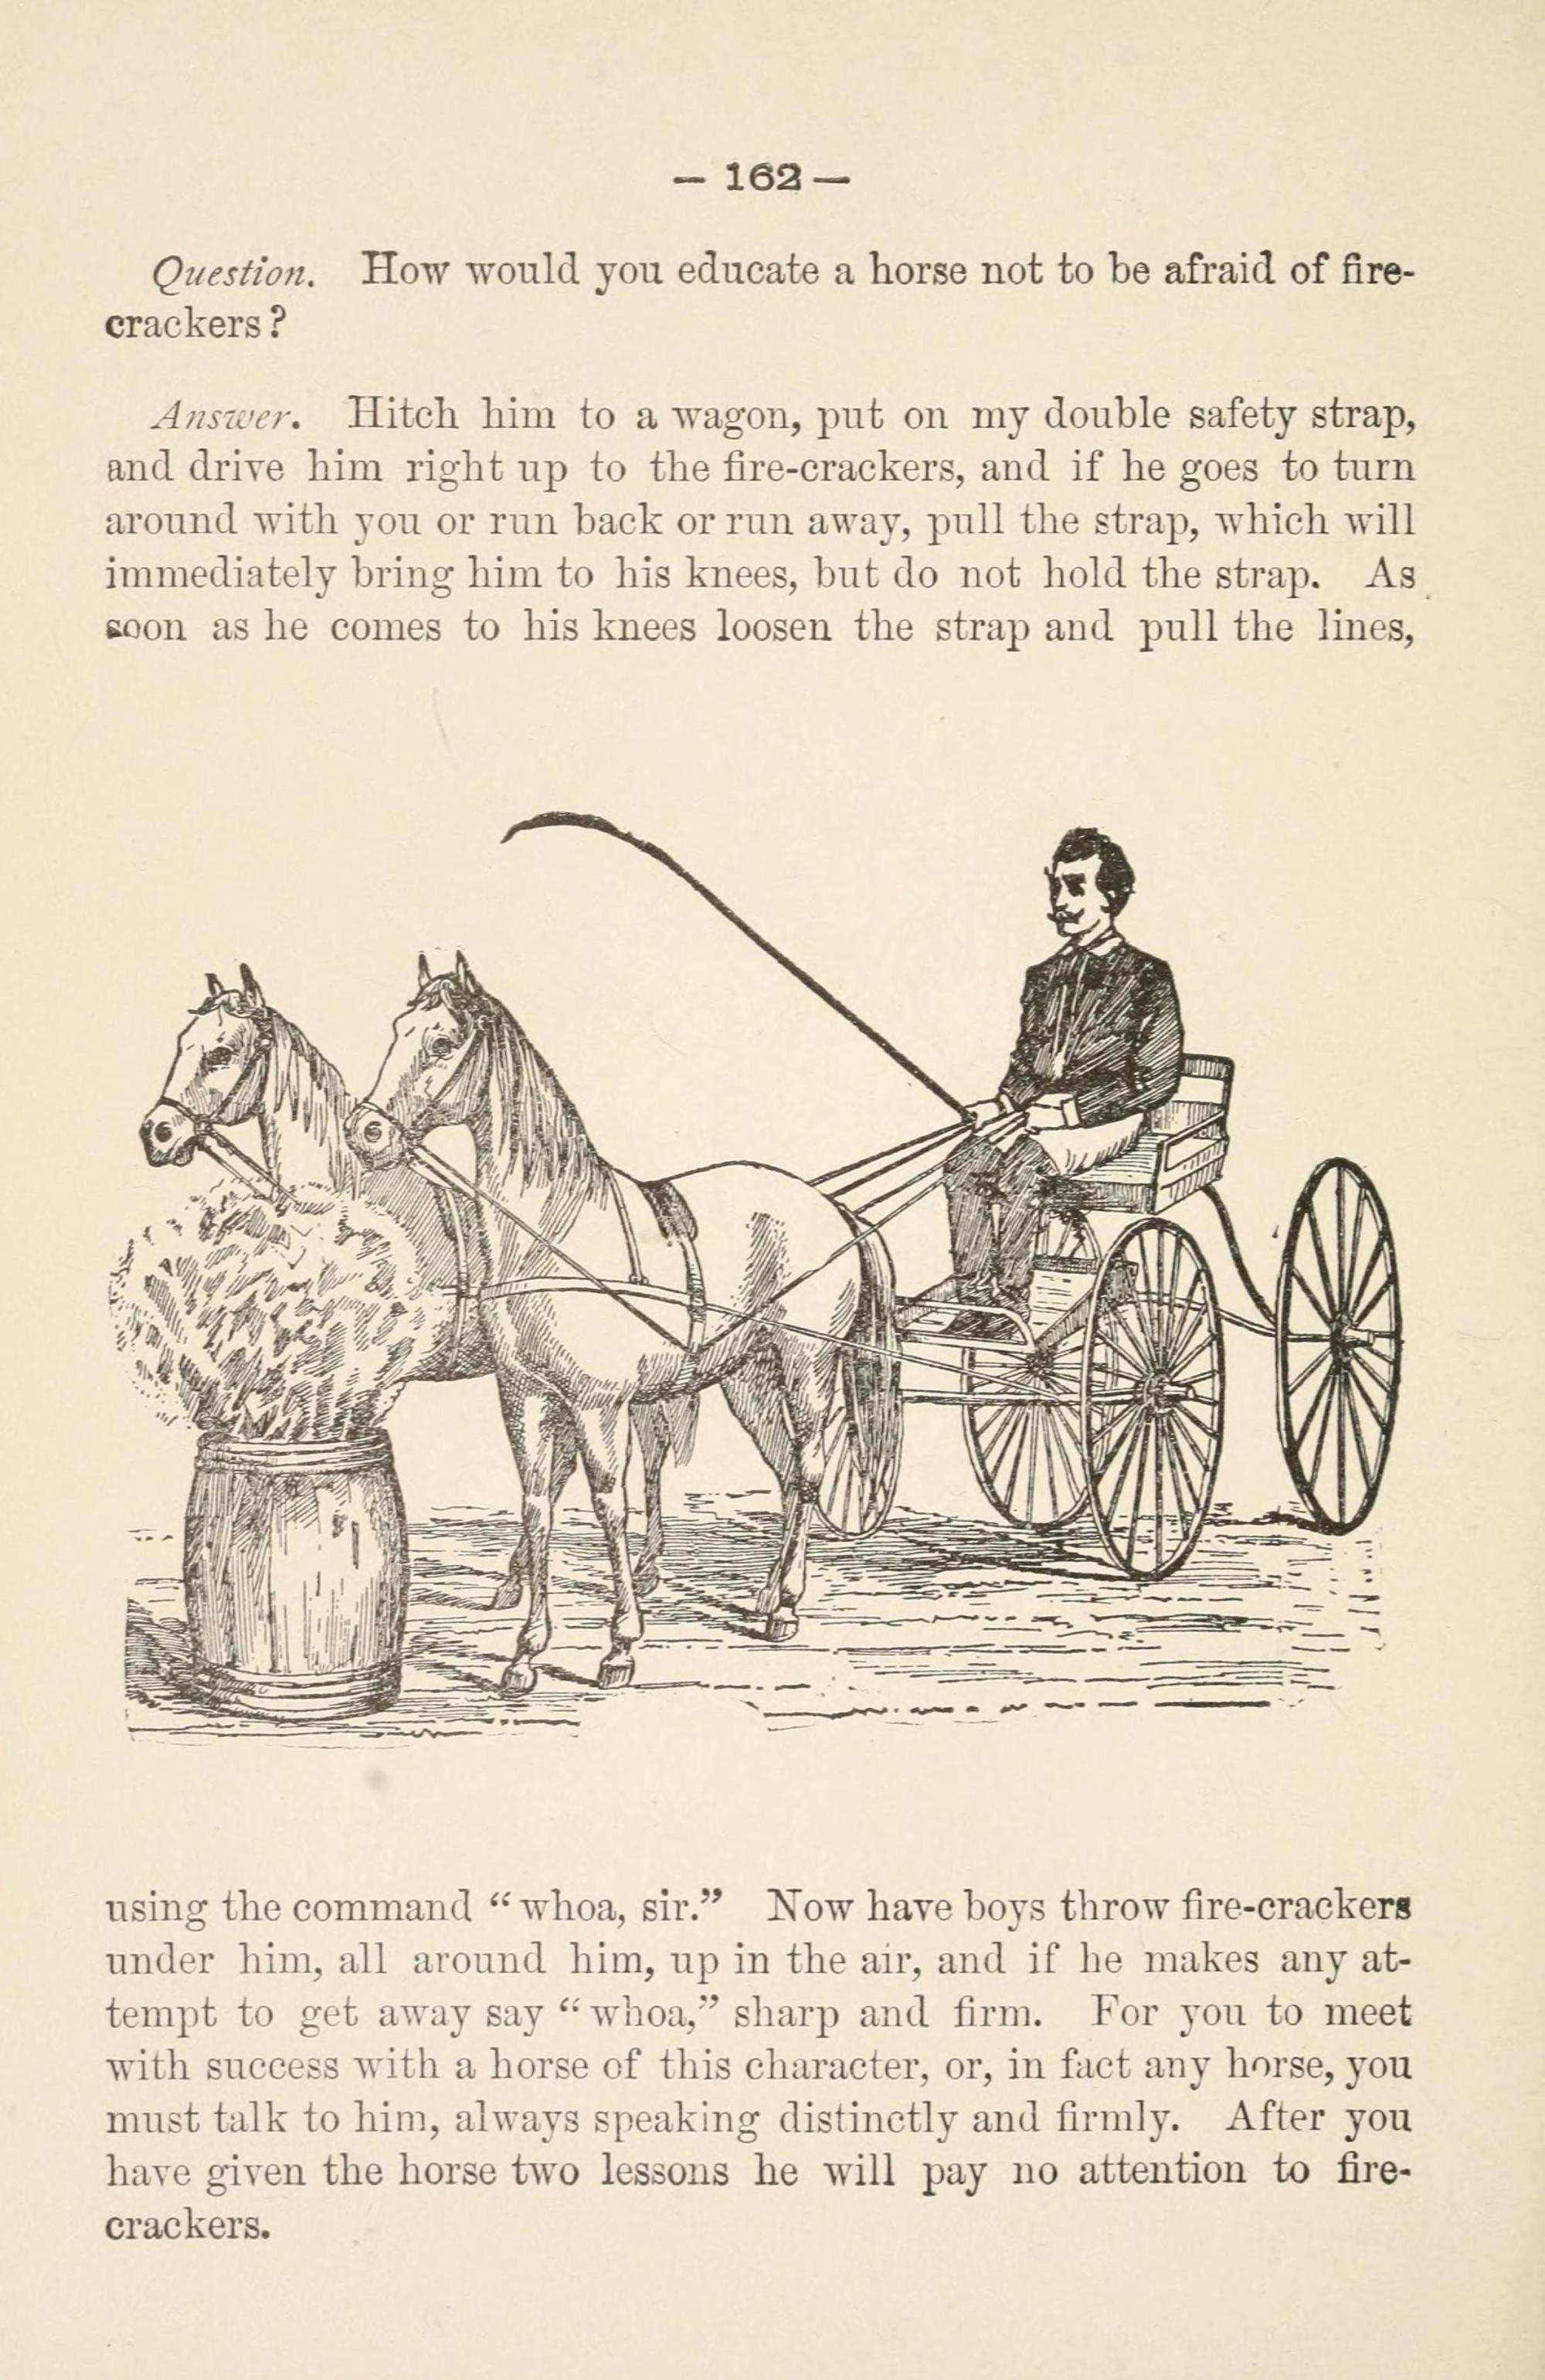 hight resolution of file gleason s horse book page 162 bhl18285154 jpg